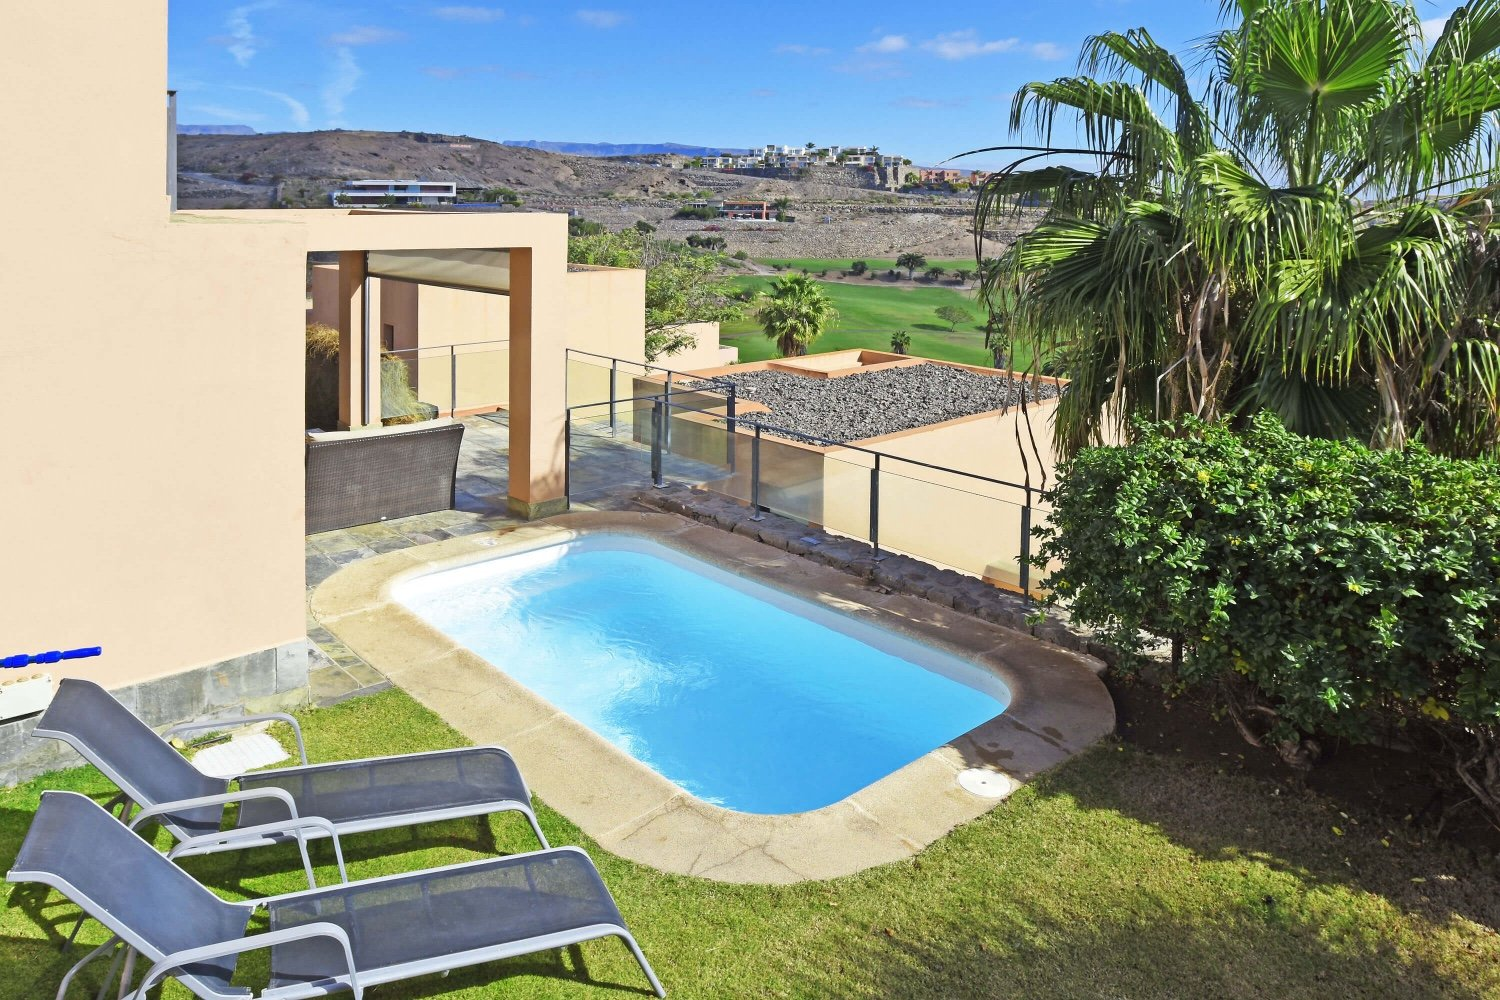 Bright holiday house with heatable private pool and spectacular views to the golf course, the sea and the mountains